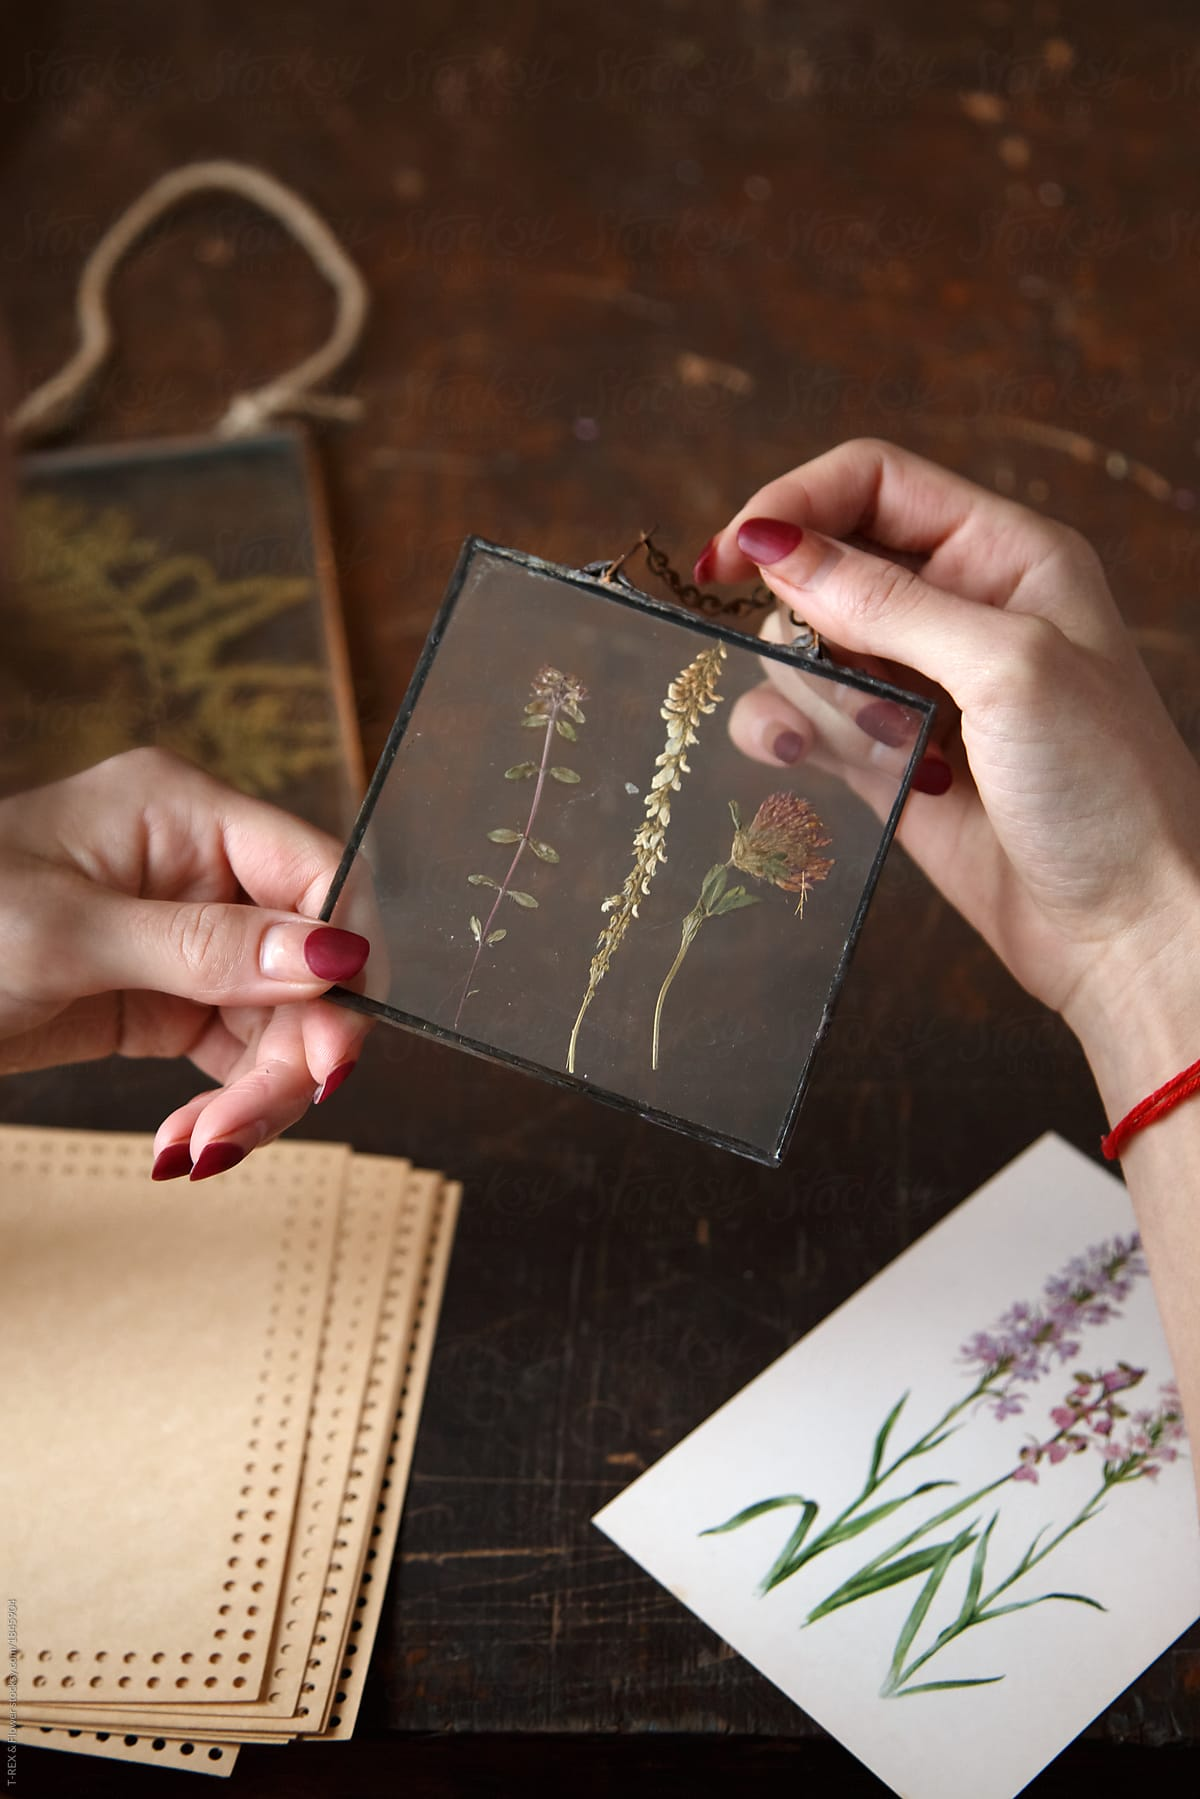 How to collect herbarium on the nails